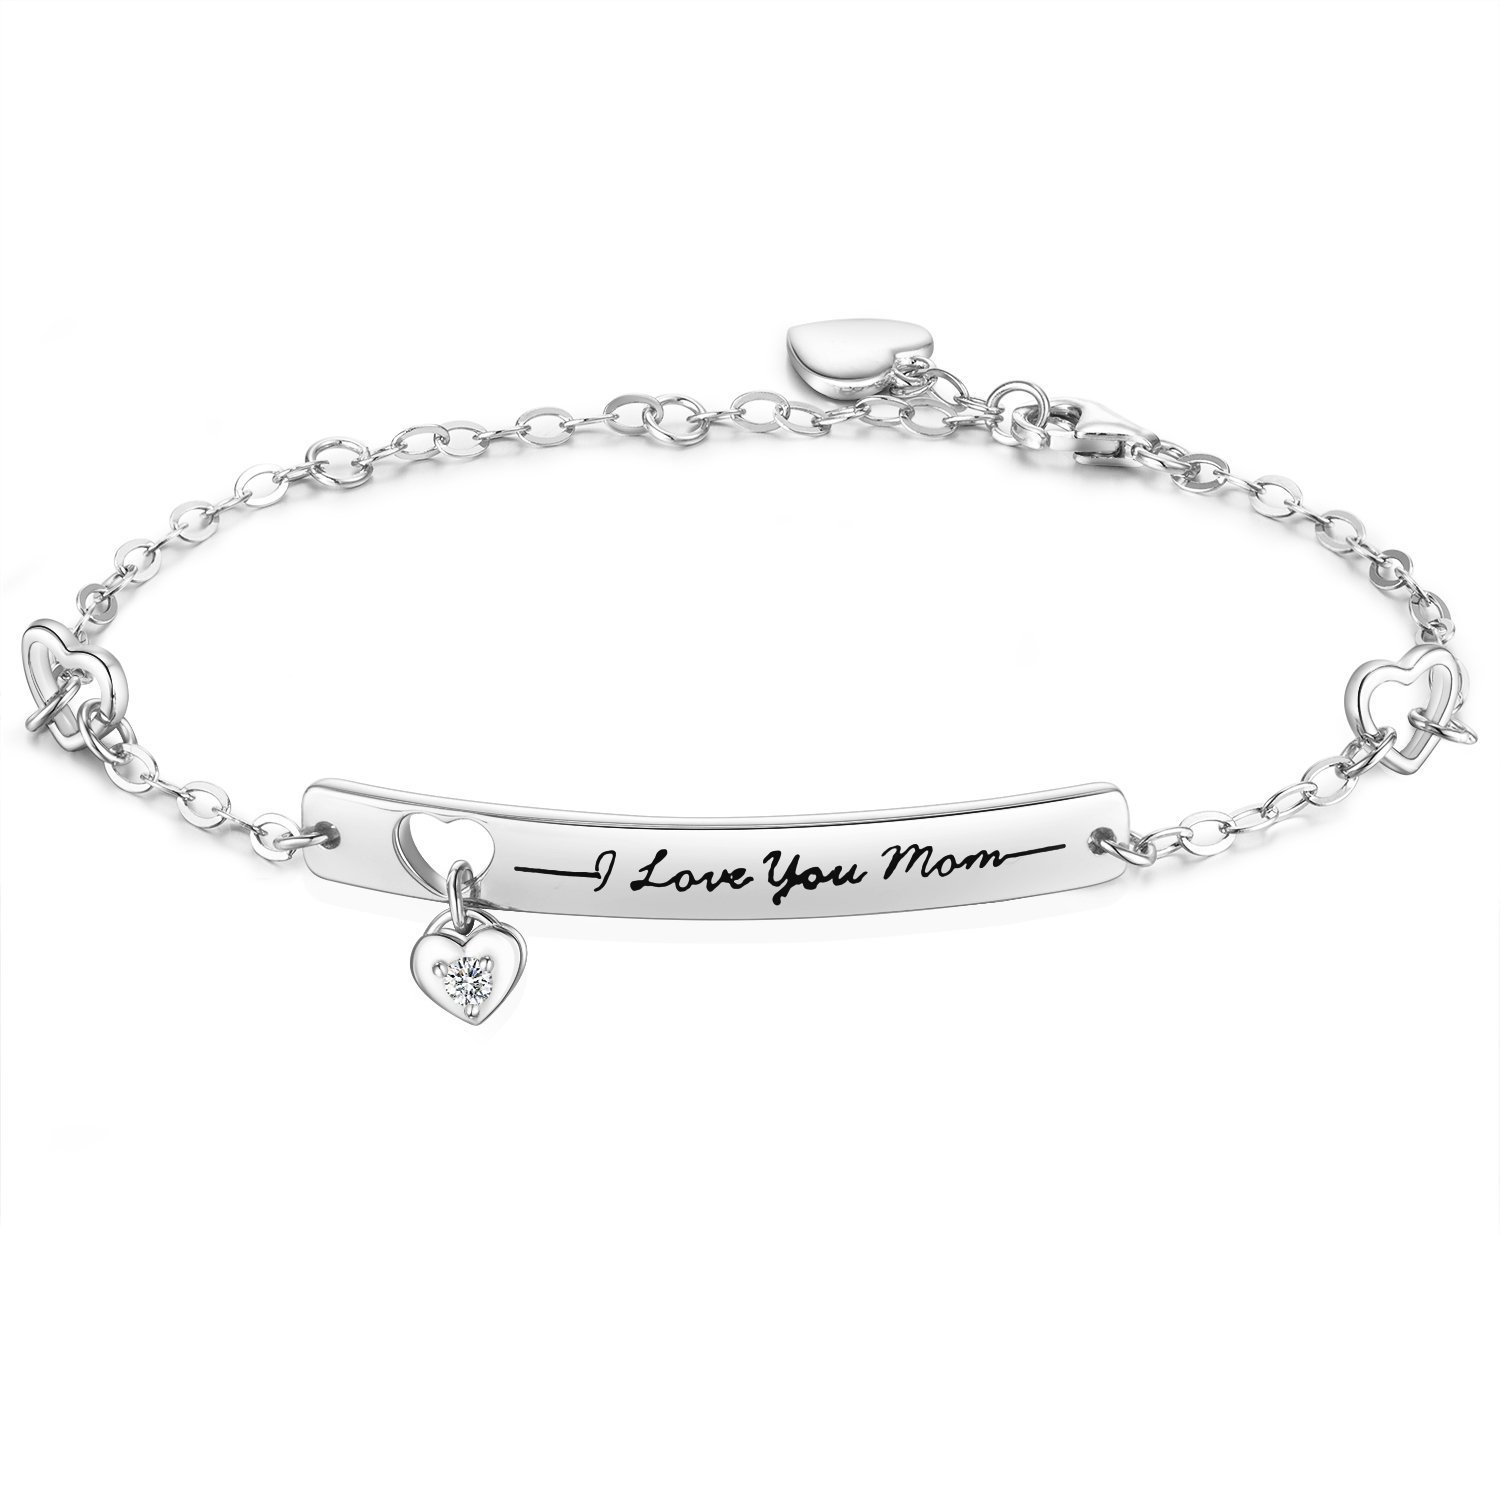 "NINAMAID ""I Love You Mom"" Engraved 925 Sterling Silver Bracelet Sparkling Cubic Zirconia Mother's Gift by NINAMAID (Image #1)"